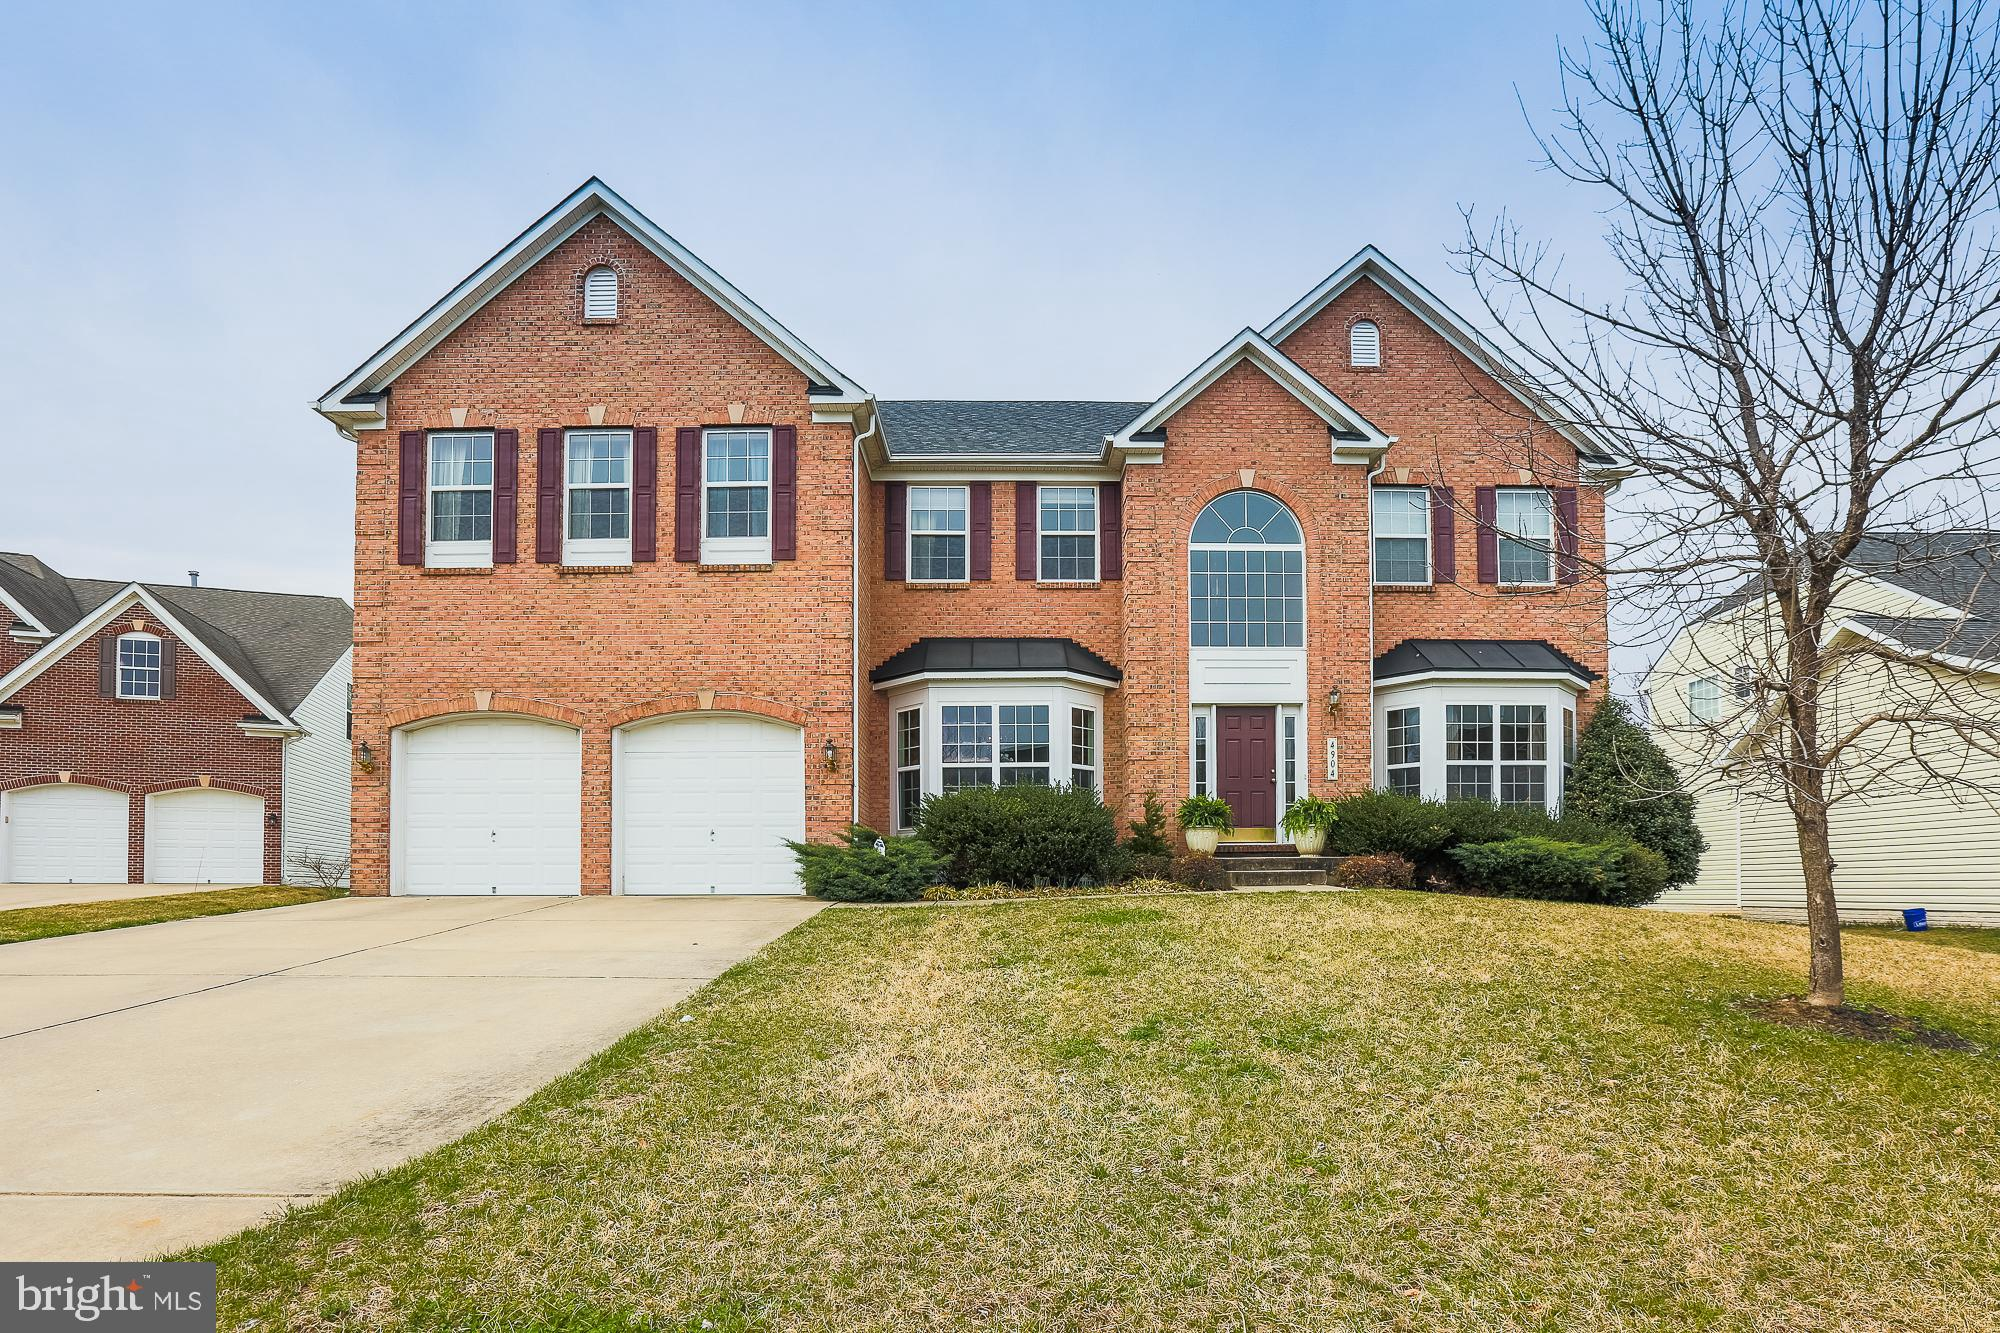 4904 LODI LANE, ELLICOTT CITY, MD 21043